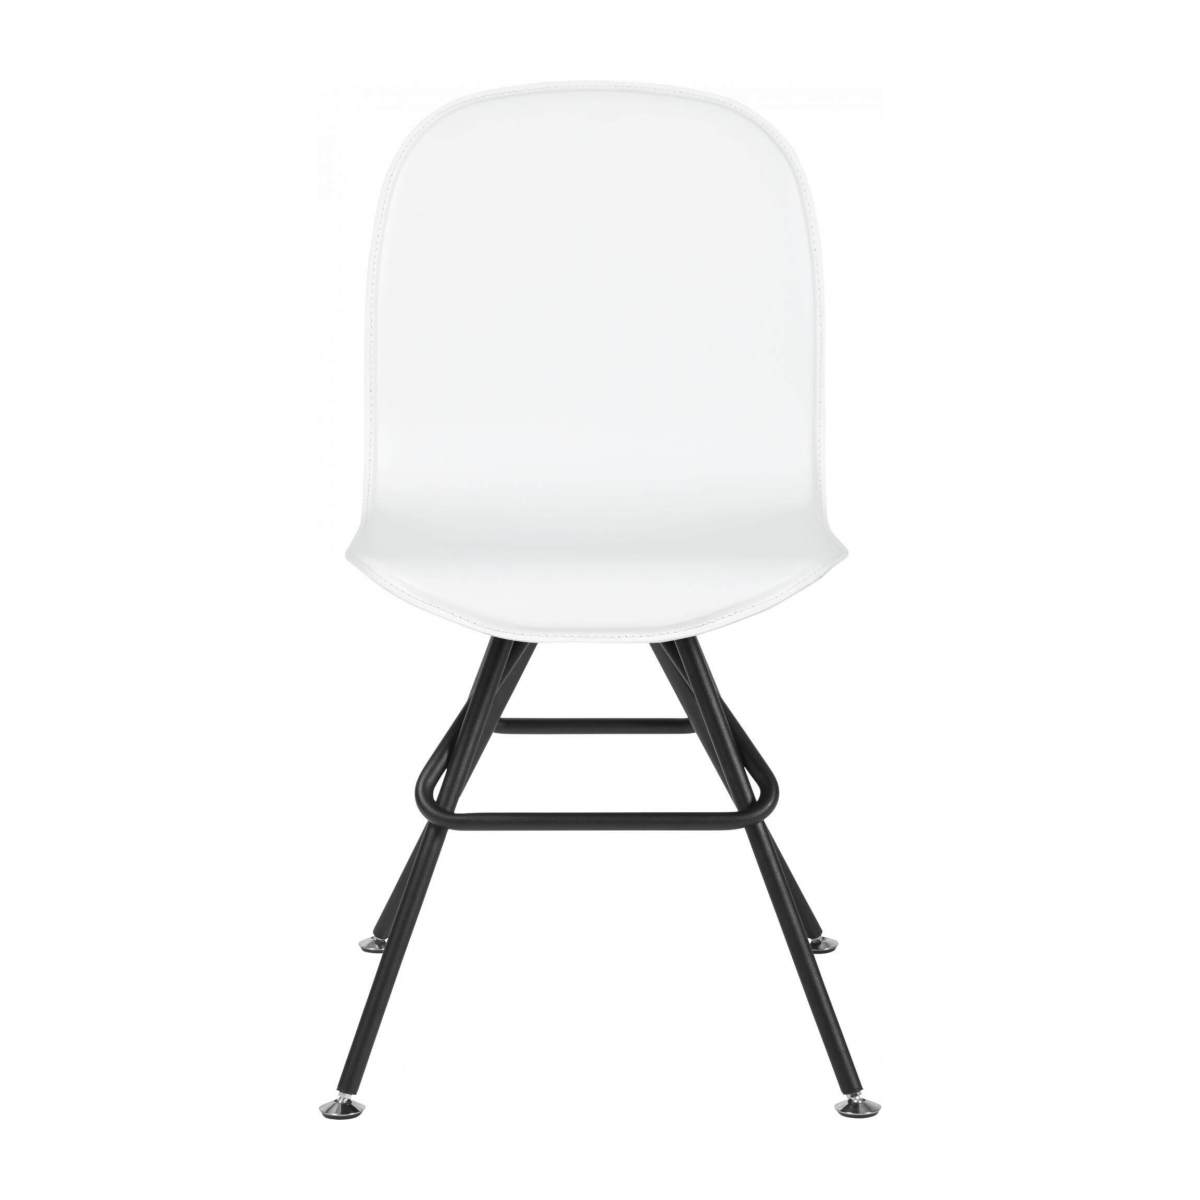 Chair with white faux leather cover and black steel legs n°1